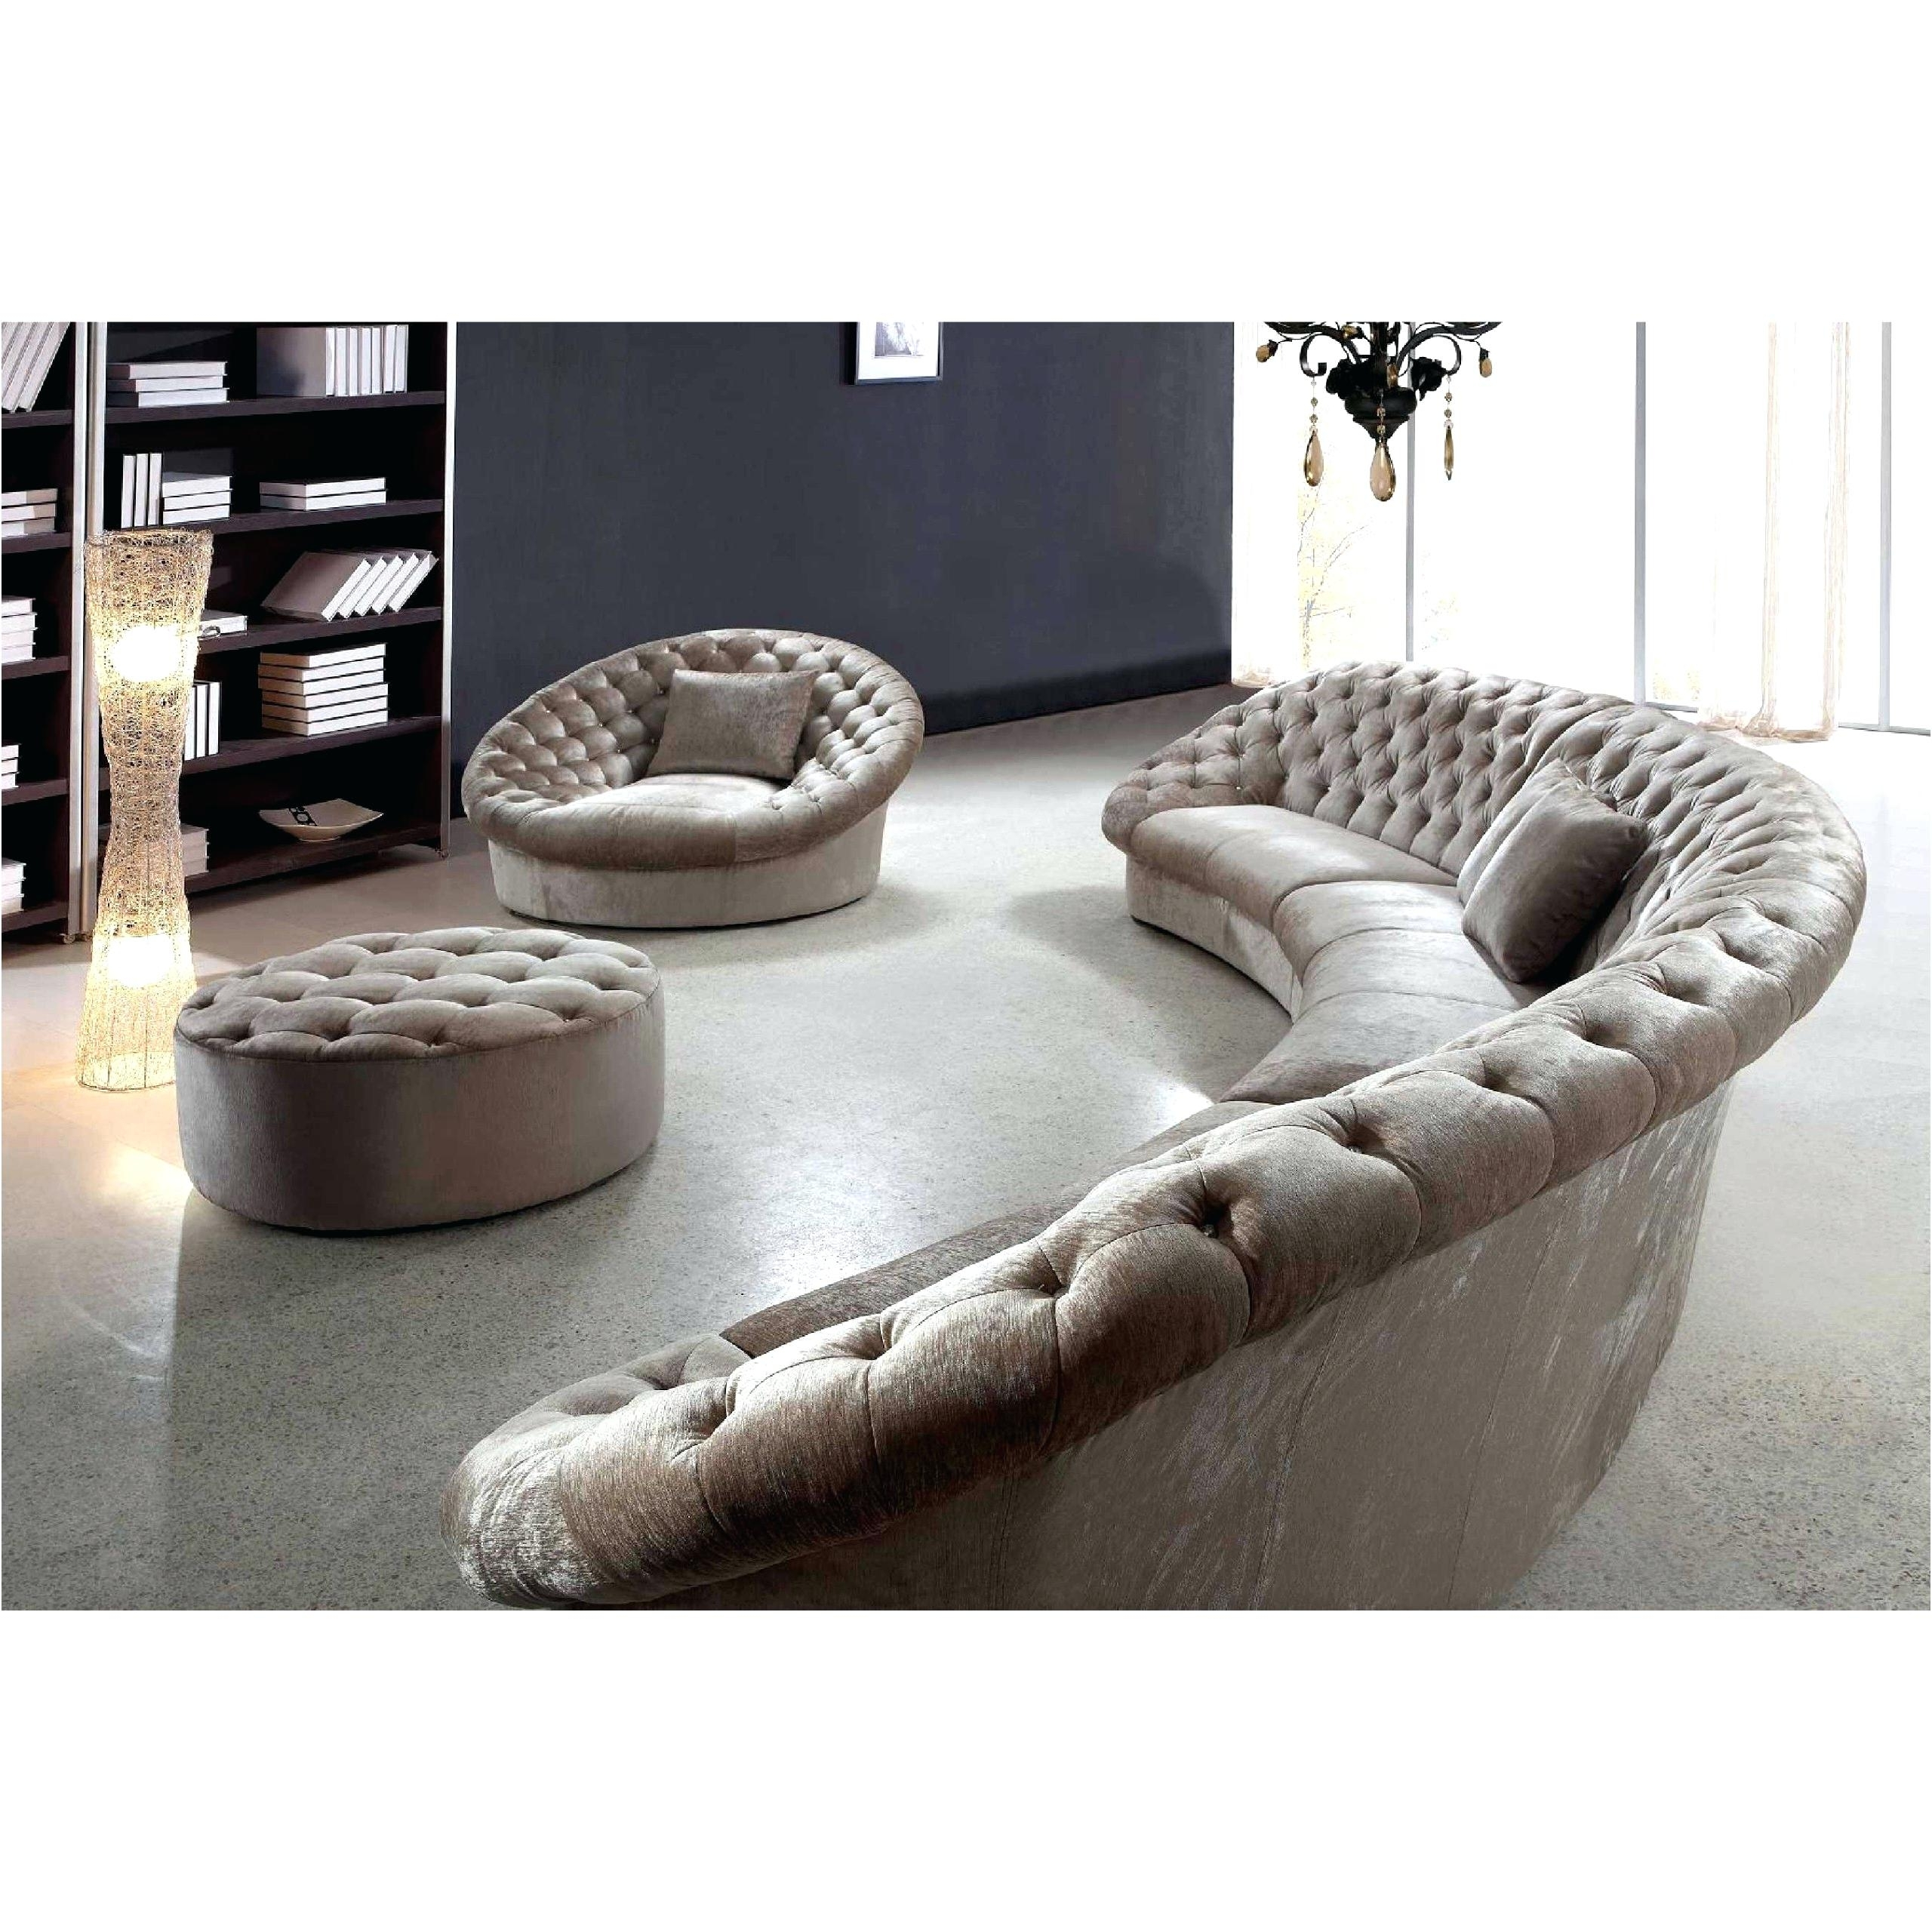 Round Sofas Within Widely Used Circular Sectional Sofa Modern Round Sofas Semi Circle Rounded (View 13 of 20)